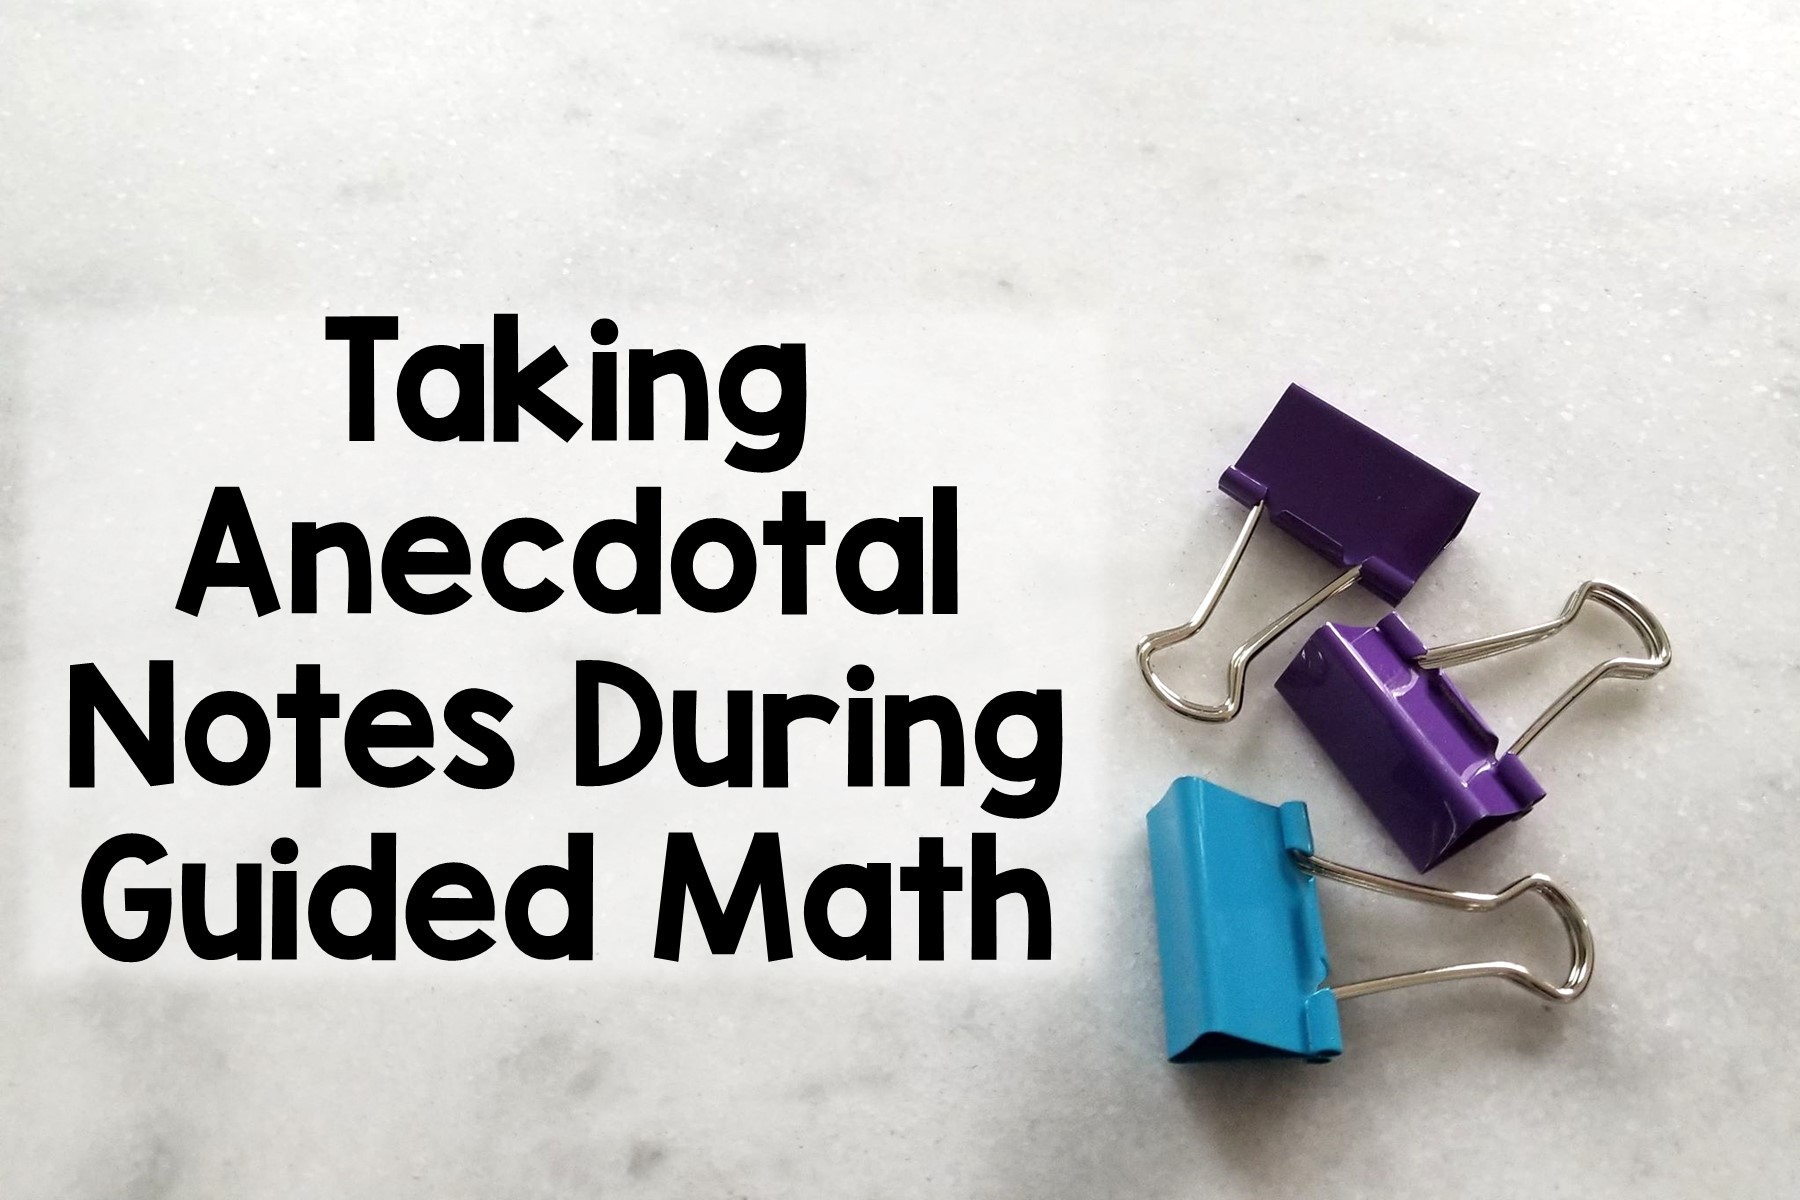 Learn about taking notes during guided math